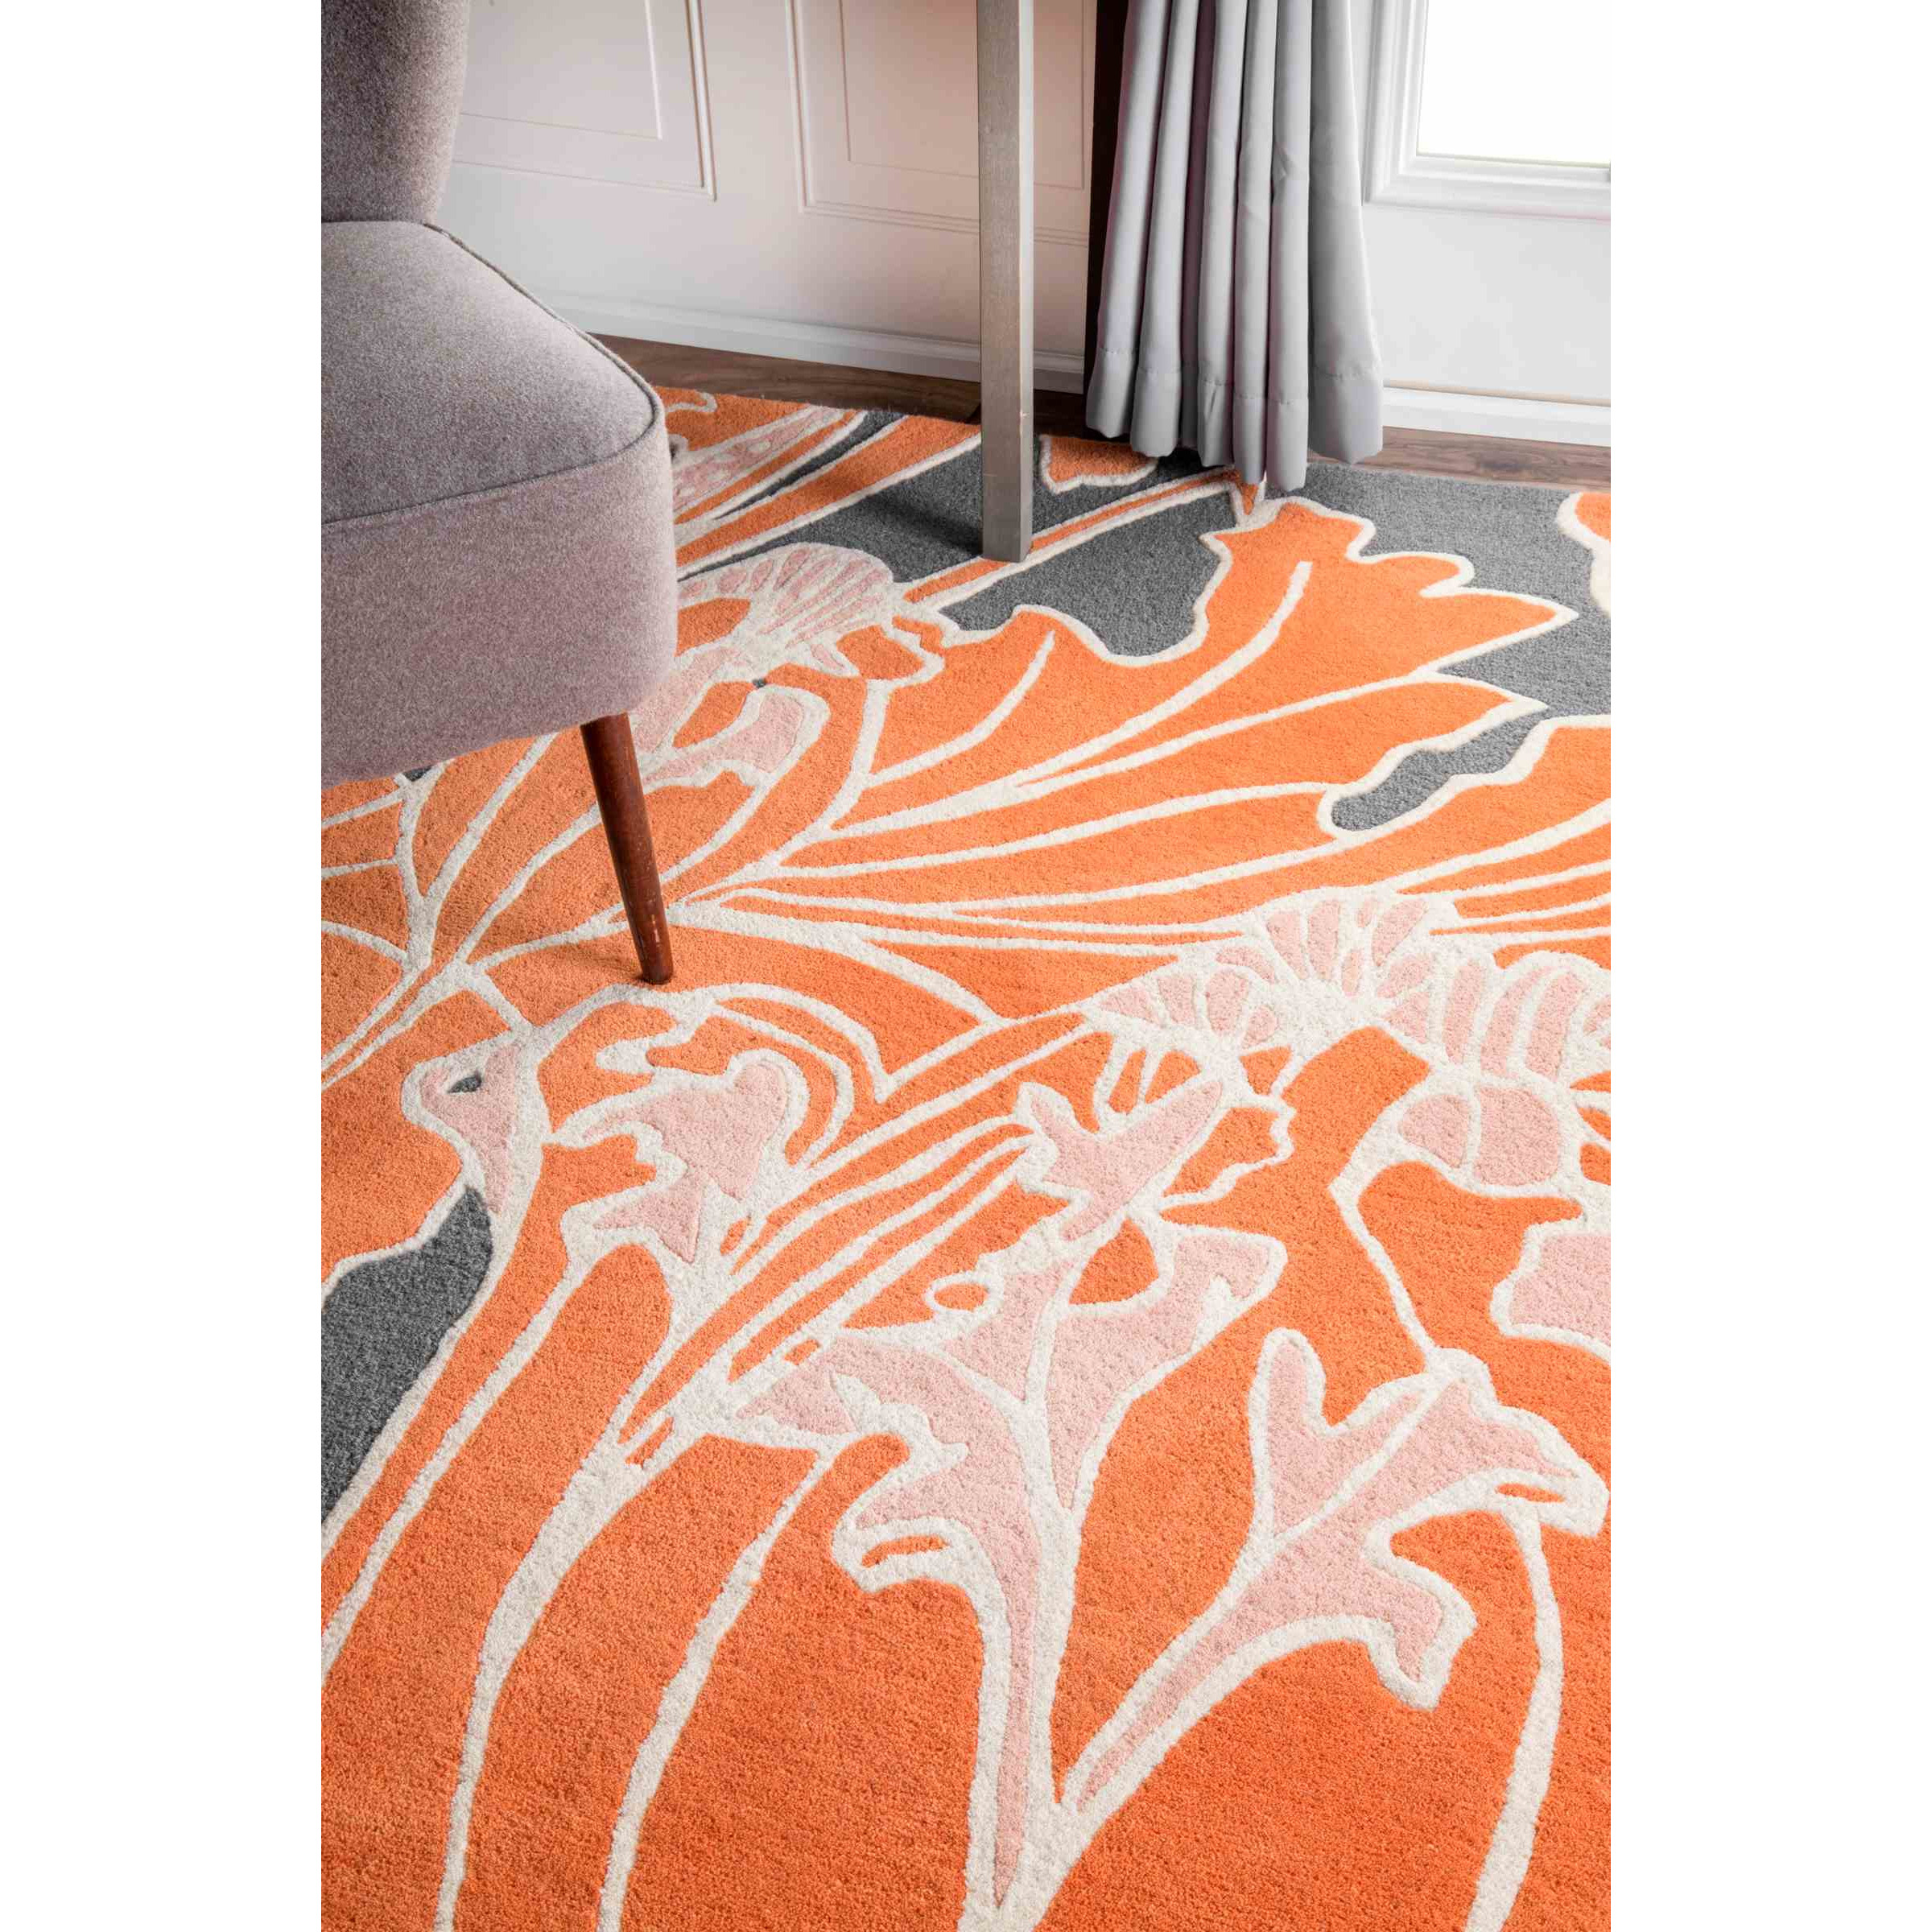 victory-land-thomas-paul-hand-tufted-orange-gray-area-rug-mrtp03a.jpg